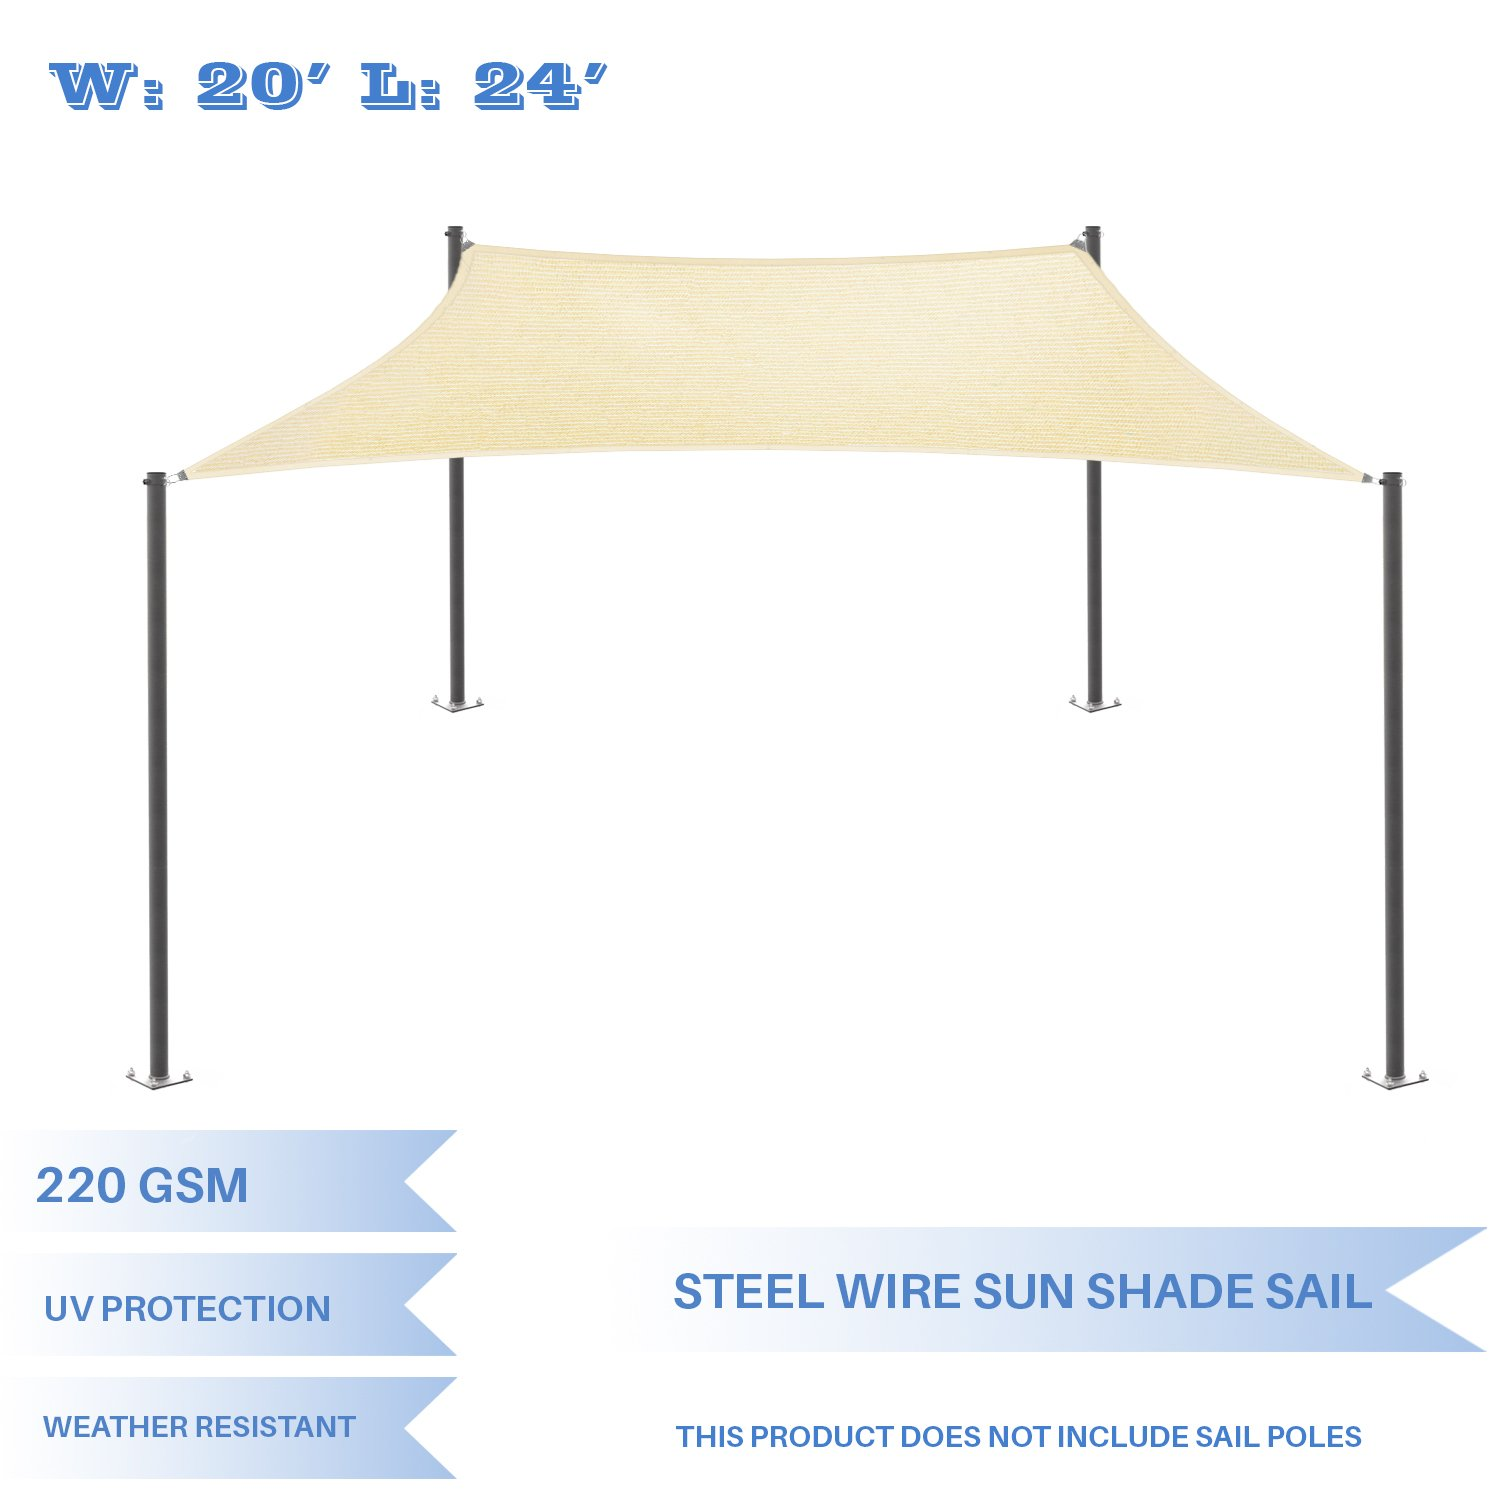 E&K Sunrise 20' x 24' Strengthen Large Sun Shade Sail Reinforced by Steel Wire- Beige Rectangle Heavy Duty - (220 GSM)-Perfect Patio Outdoor Garden Backyard